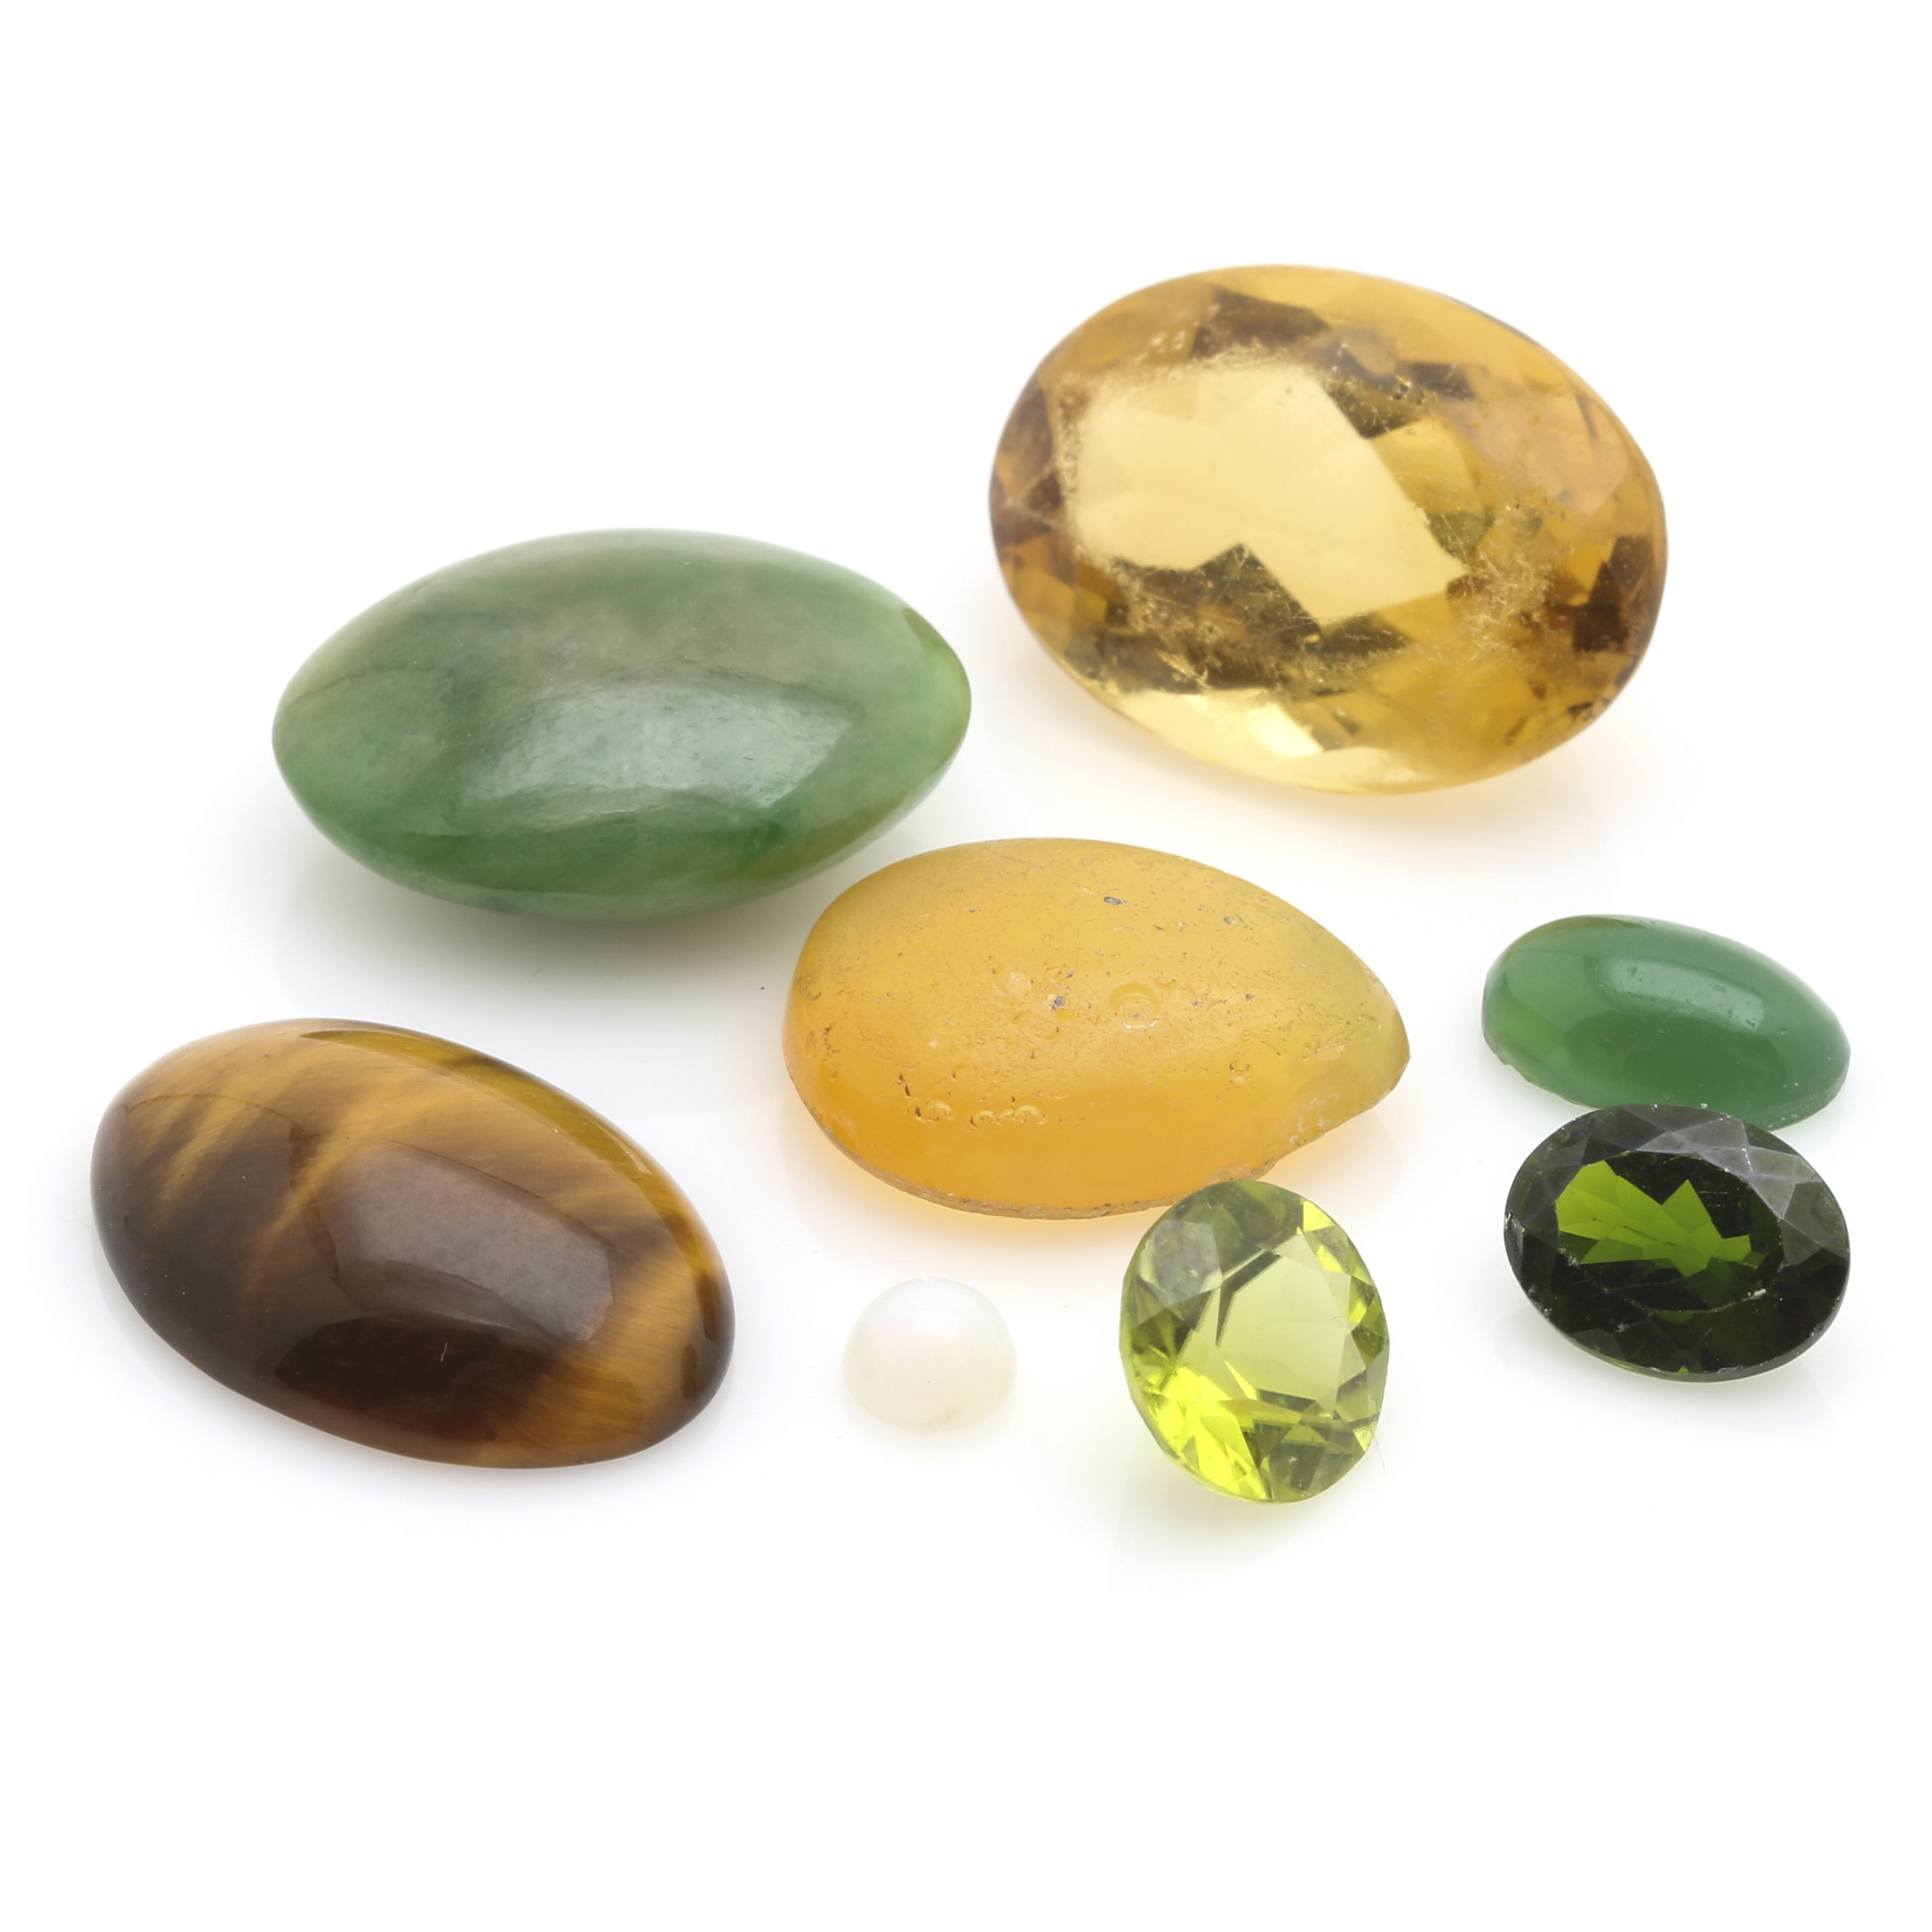 Assortment of Mixed Loose Gemstones featuring a 5.15 CT Opal and a 13.25 CT Citrine